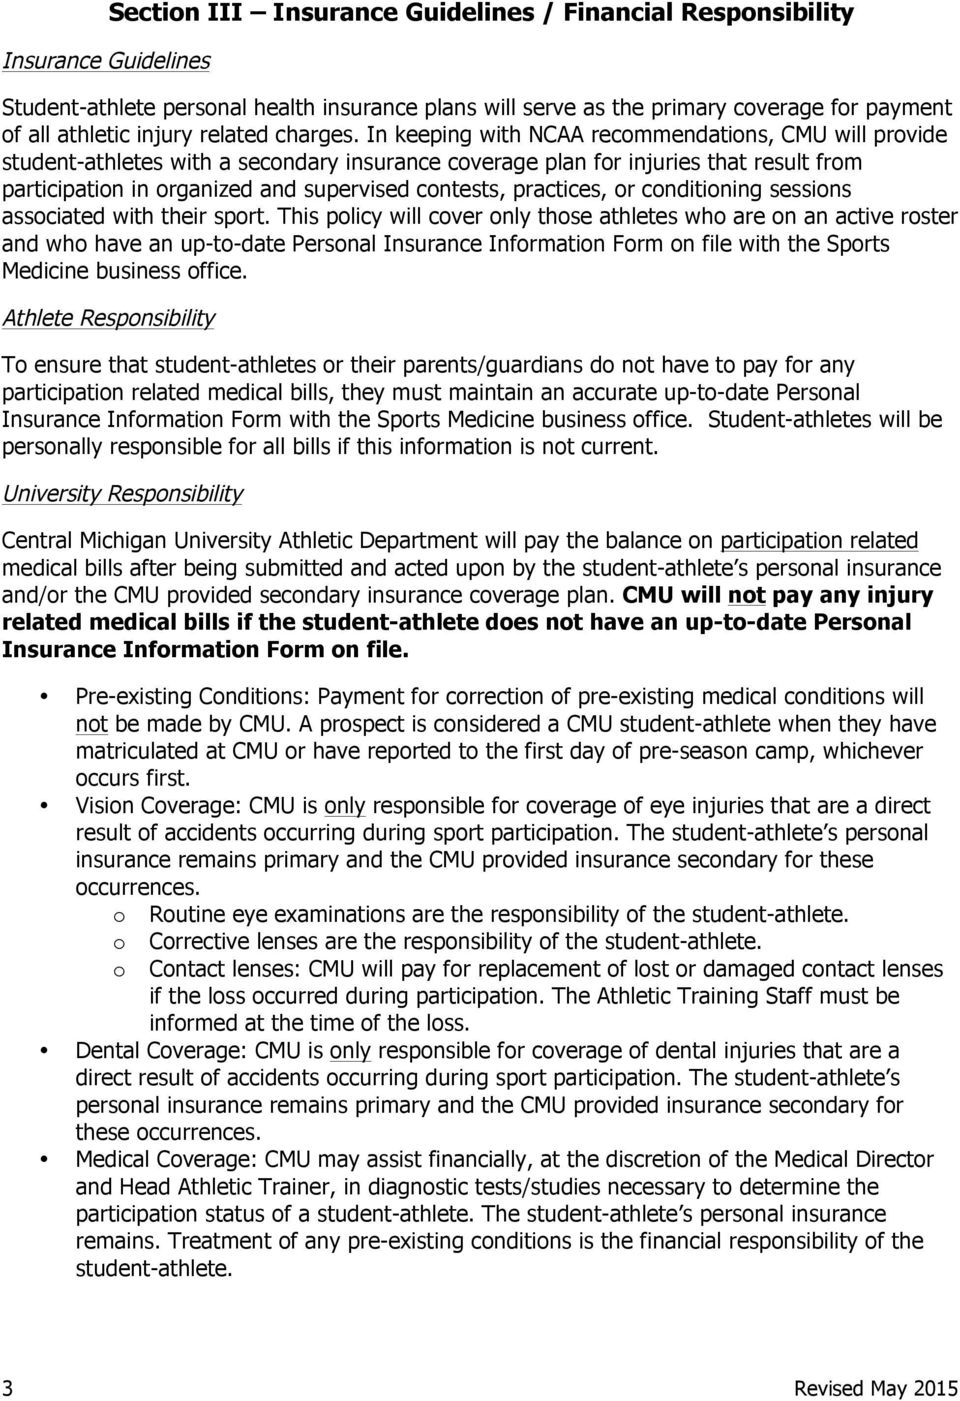 In keeping with NCAA recommendations, CMU will provide student-athletes with a secondary insurance coverage plan for injuries that result from participation in organized and supervised contests,